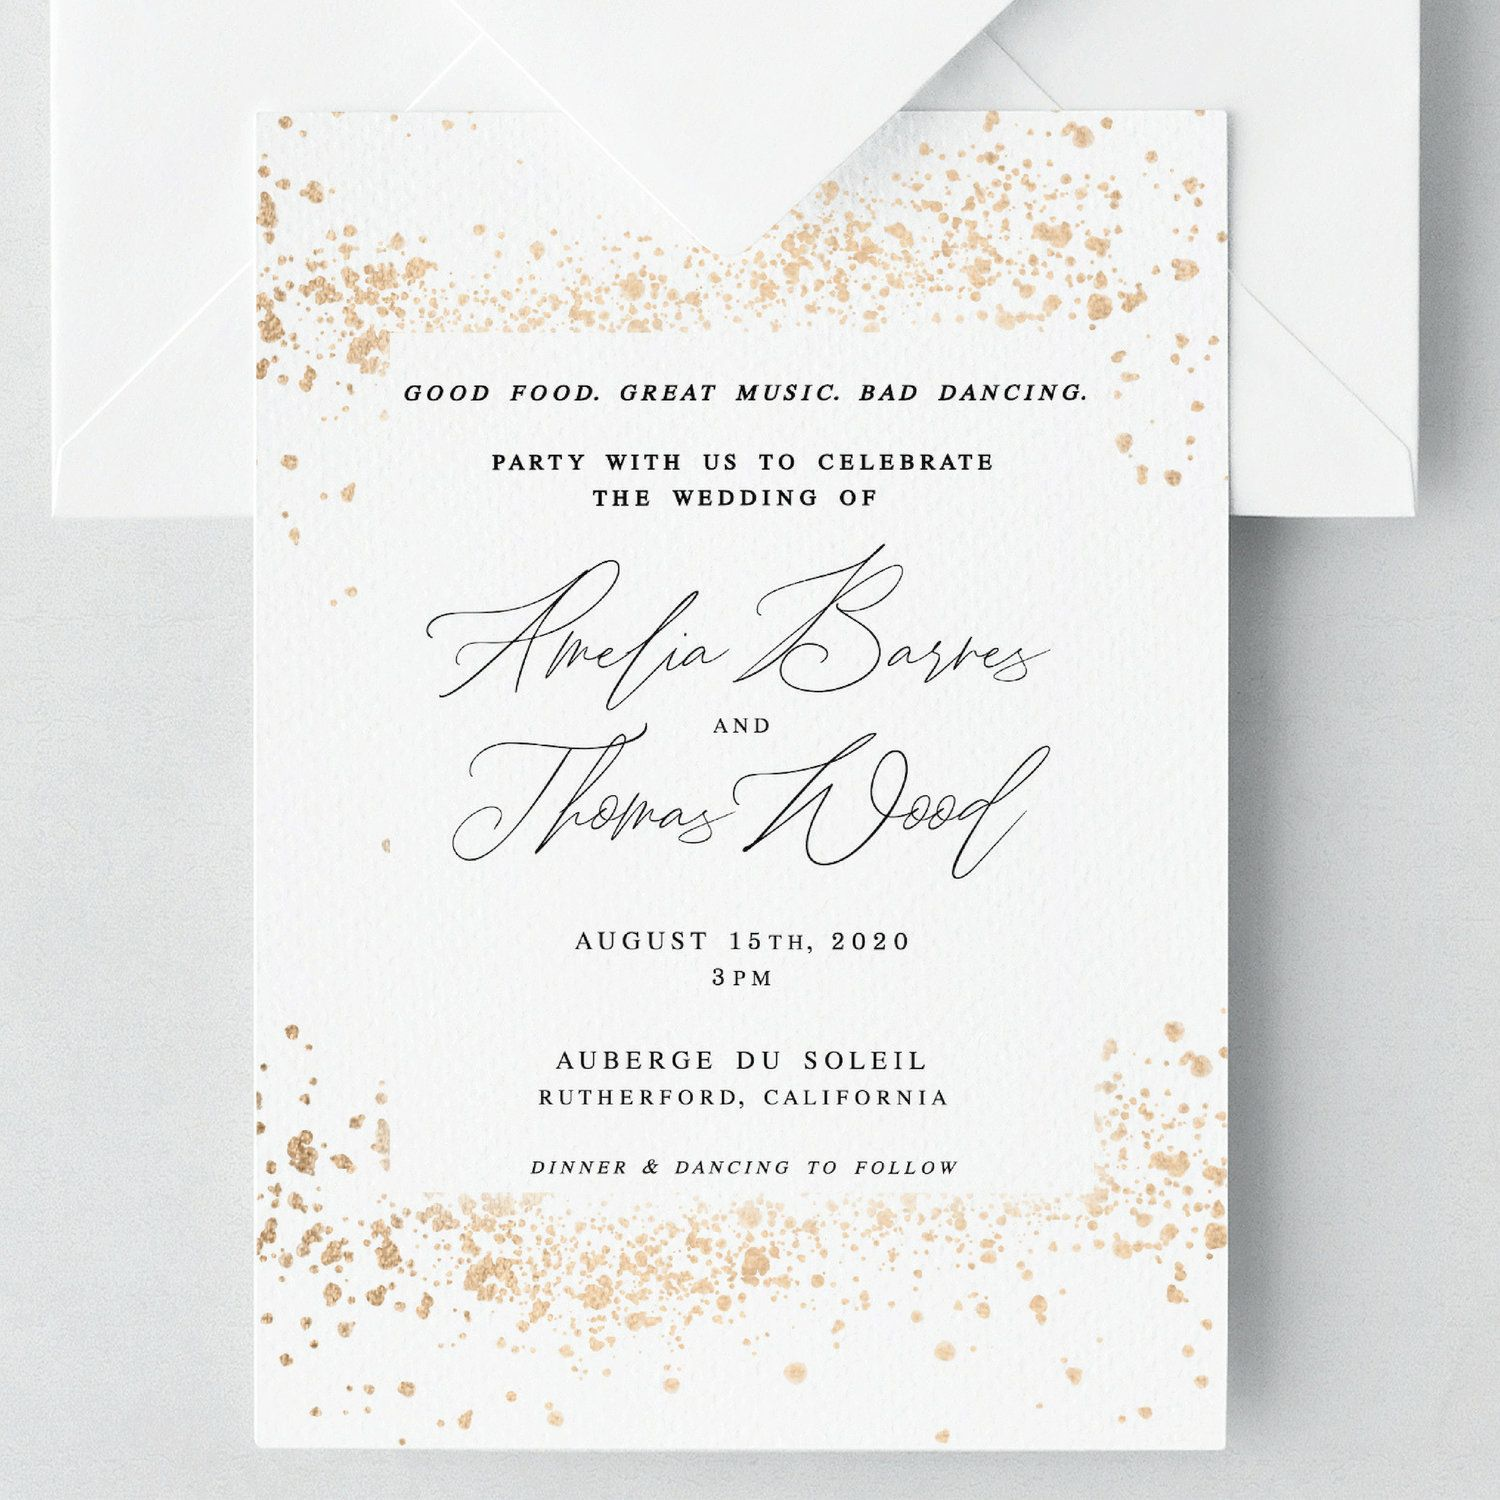 How To Word Your Wedding Invitations Plus 12 Wedding Invitation Wording Exa Wedding Invitation Wording Examples Wedding Invitation Wording Wedding Invitations